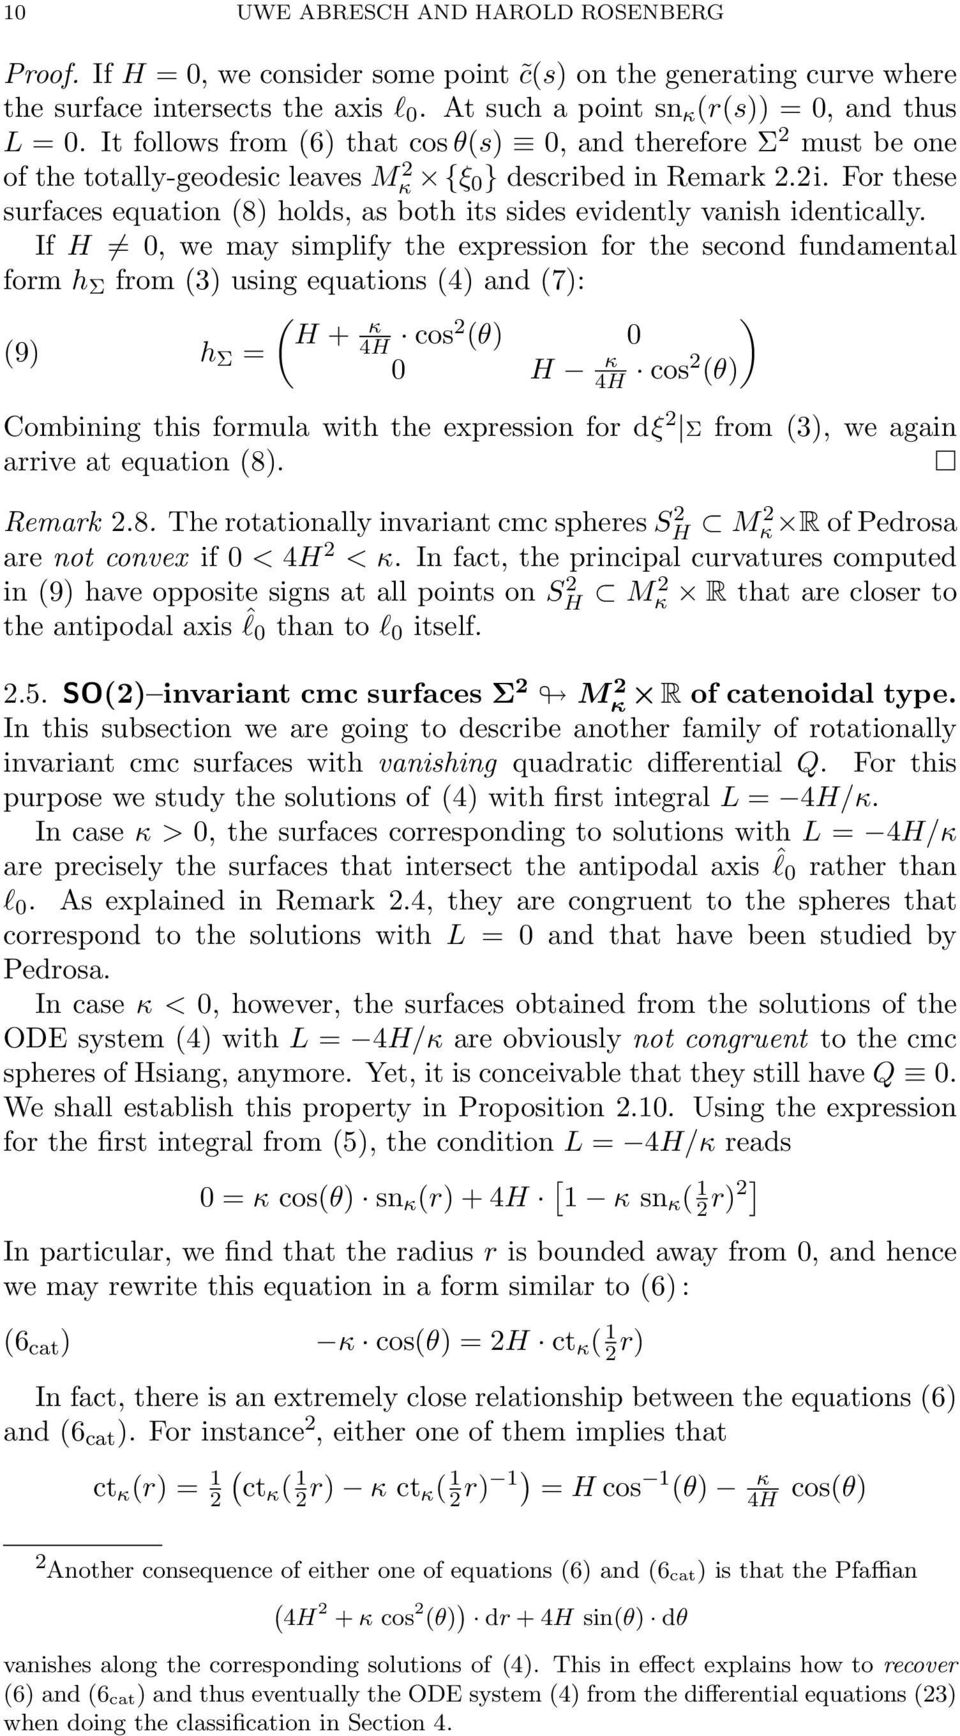 For these surfaces equation (8) holds, as both its sides evidently vanish identically.